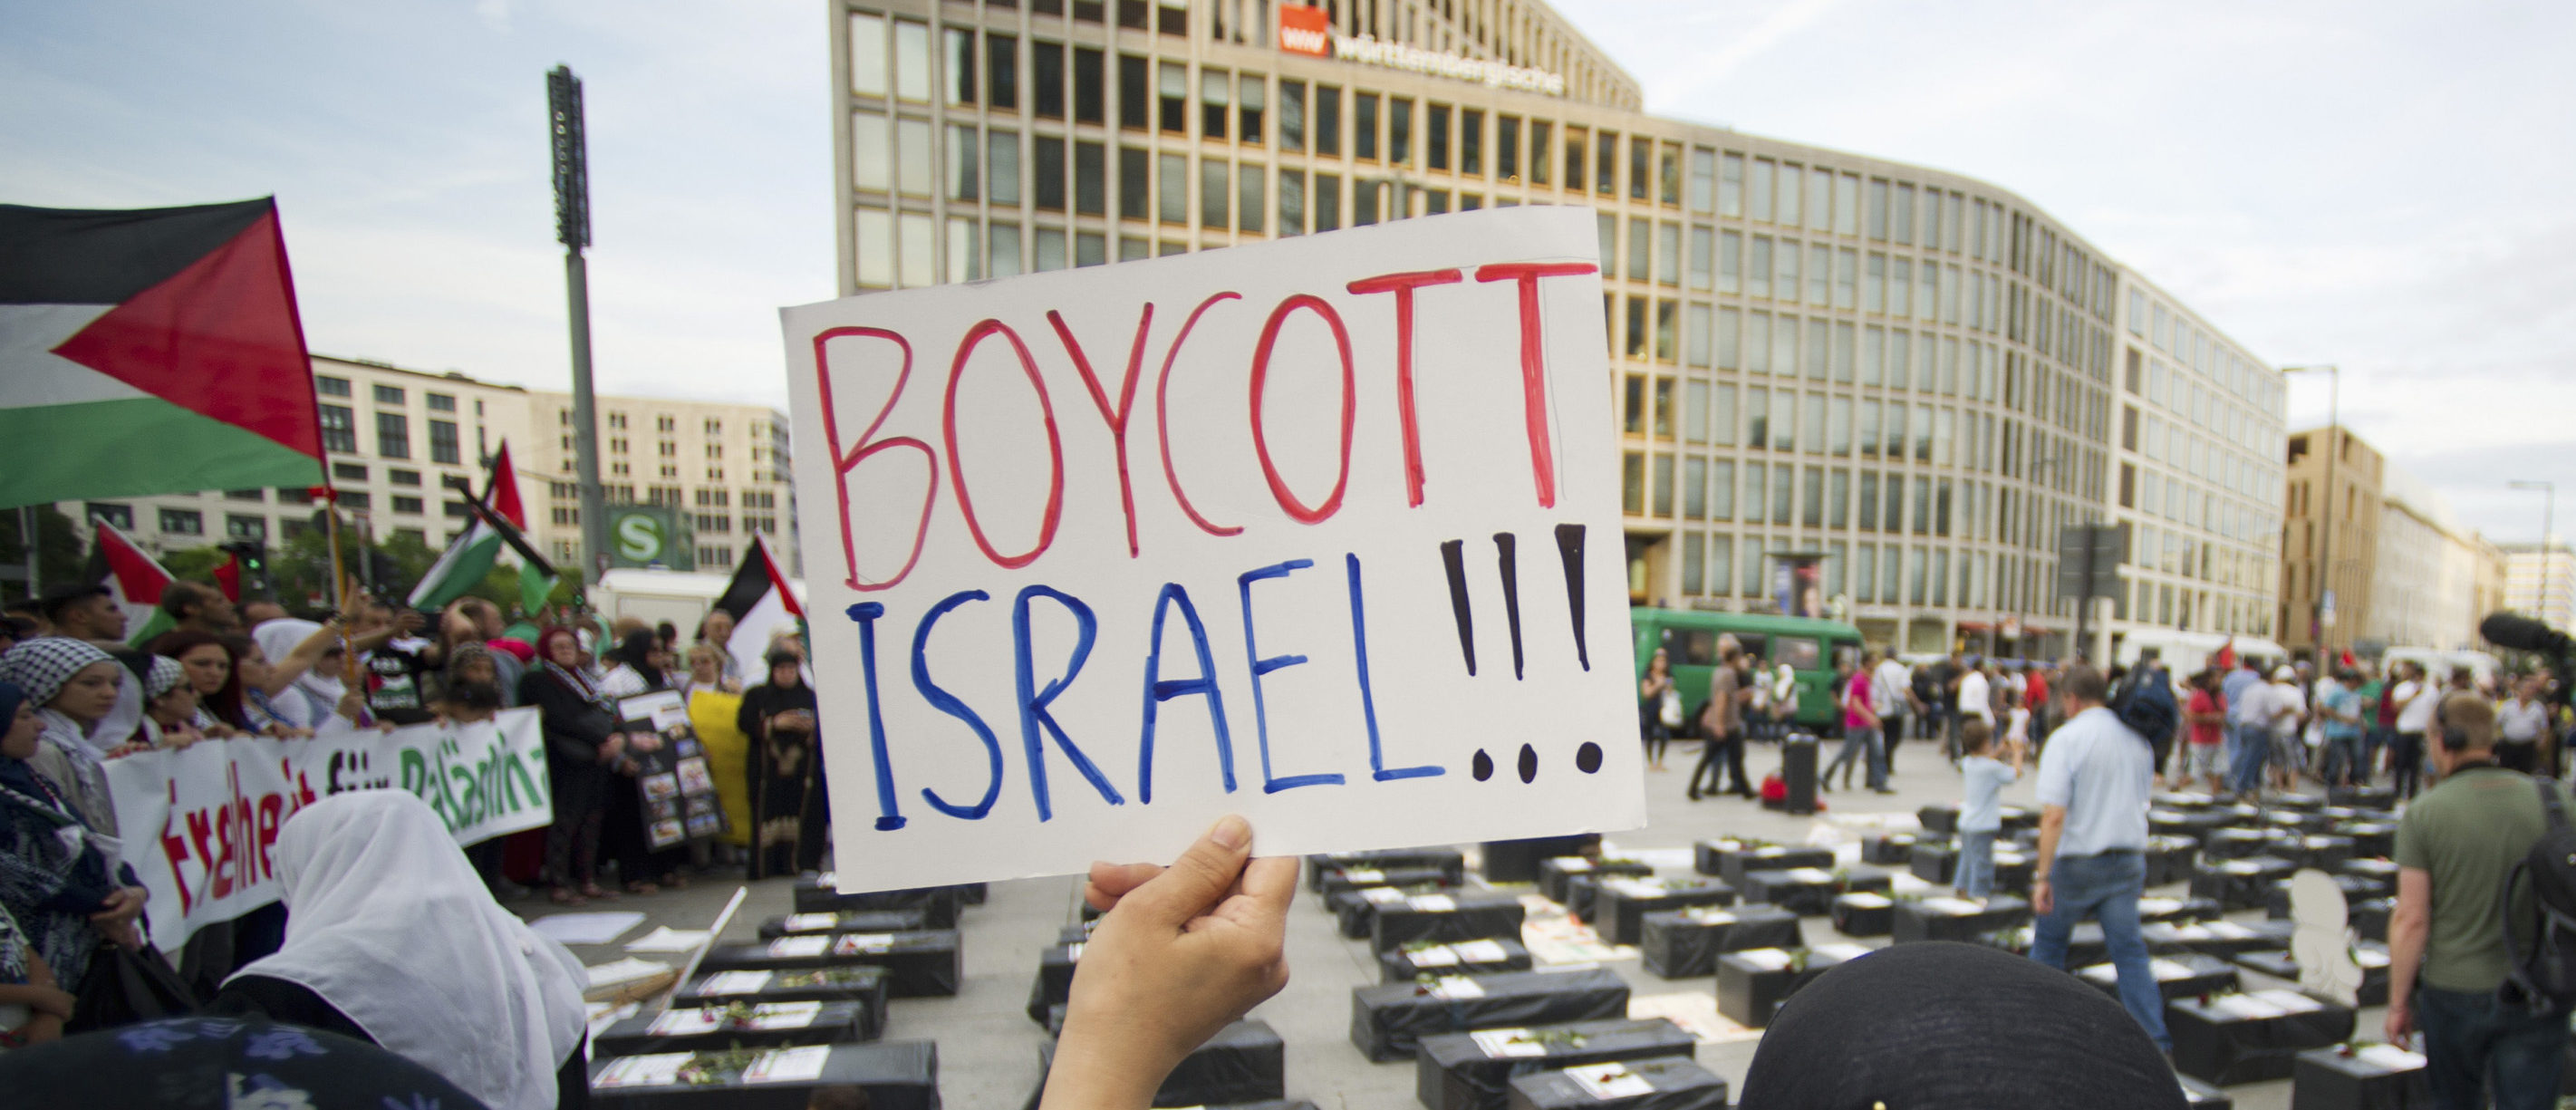 "A woman holds a sign which reads ""Boycott Israel"" in front of symbolic coffins while attending a demonstration supporting Palestine, in Berlin August 1, 2014. Israel launched its Gaza offensive on July 8 in response to a surge of rocket attacks by Gaza's dominant Hamas Islamists. Hamas said that Palestinians would continue confronting Israel until its blockade on Gaza was lifted. REUTERS/Steffi Loos (GERMANY - Tags: POLITICS CIVIL UNREST) - GM1EA8206QF02"